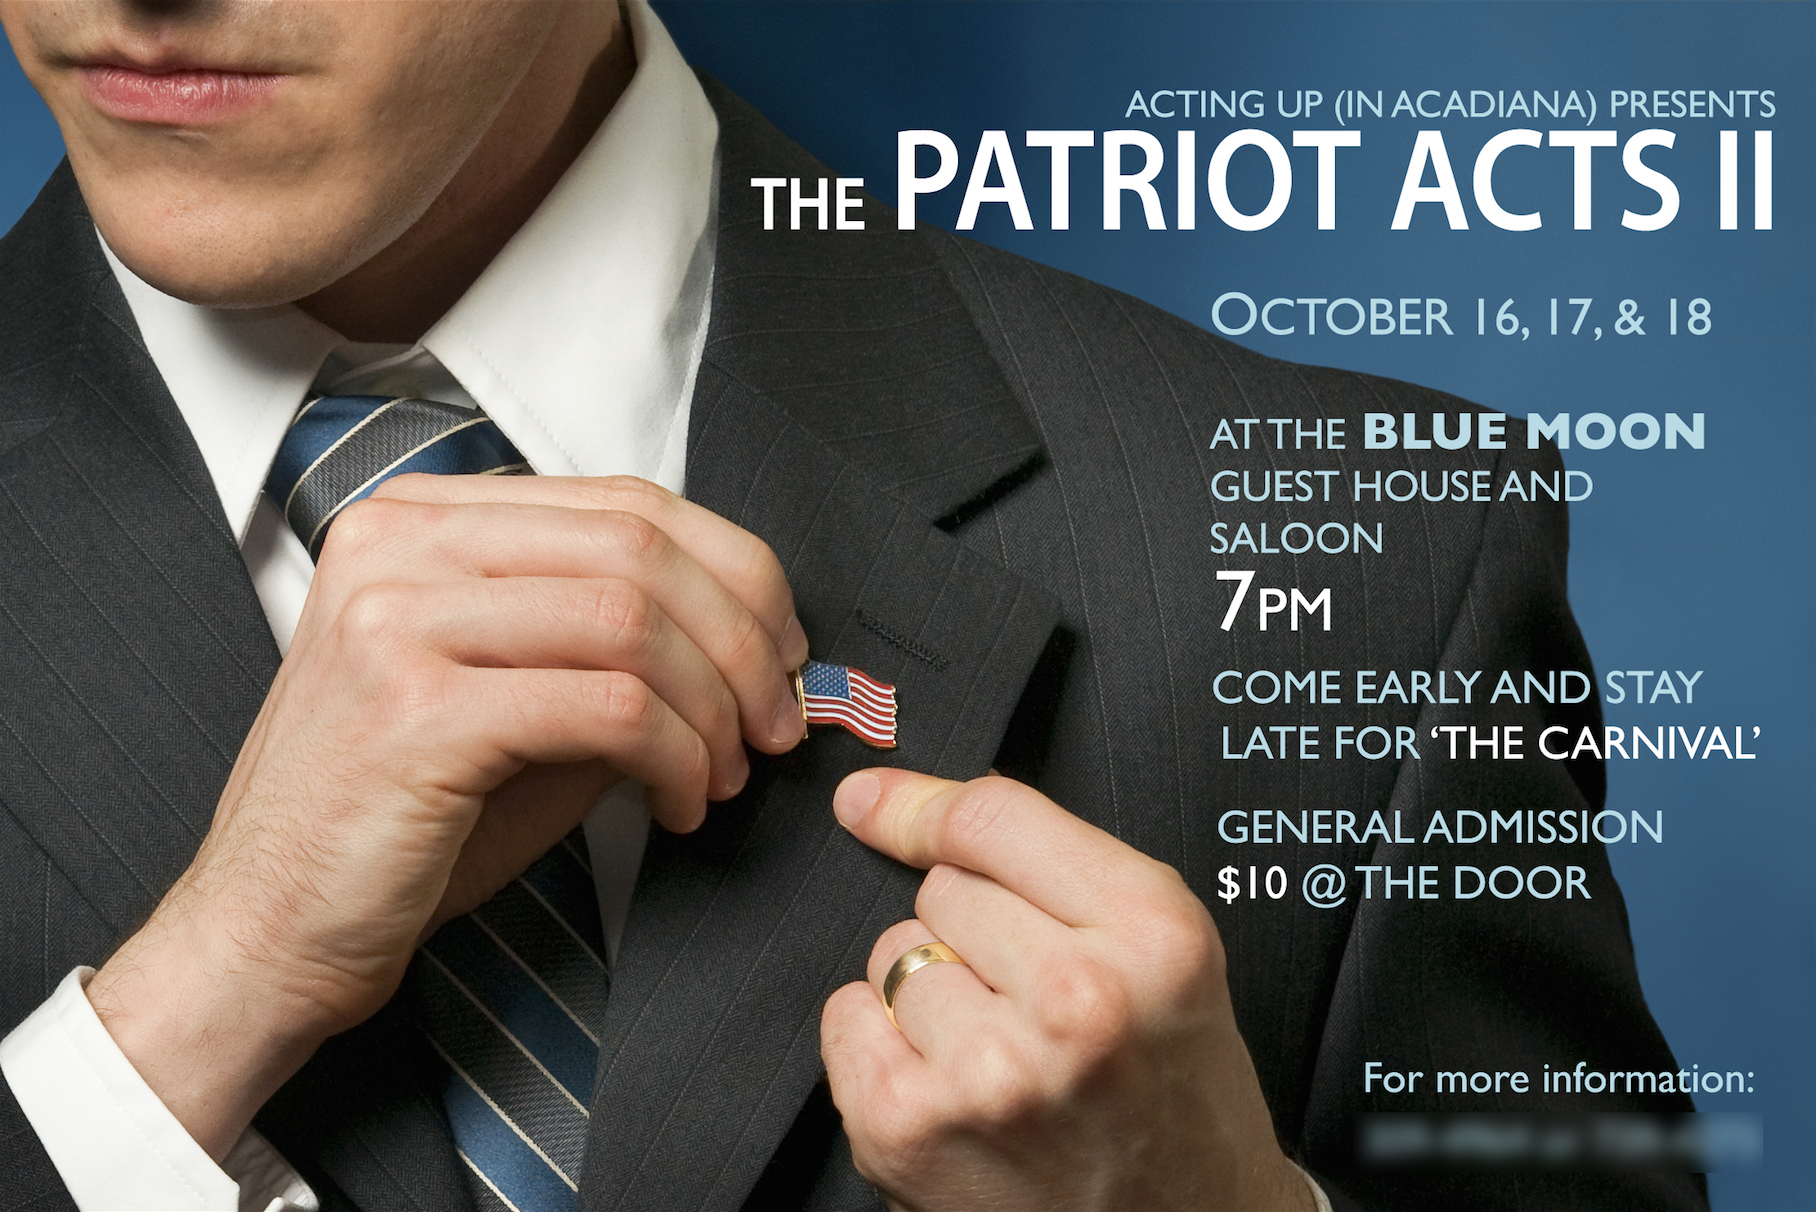 The Patriot Acts II Poster